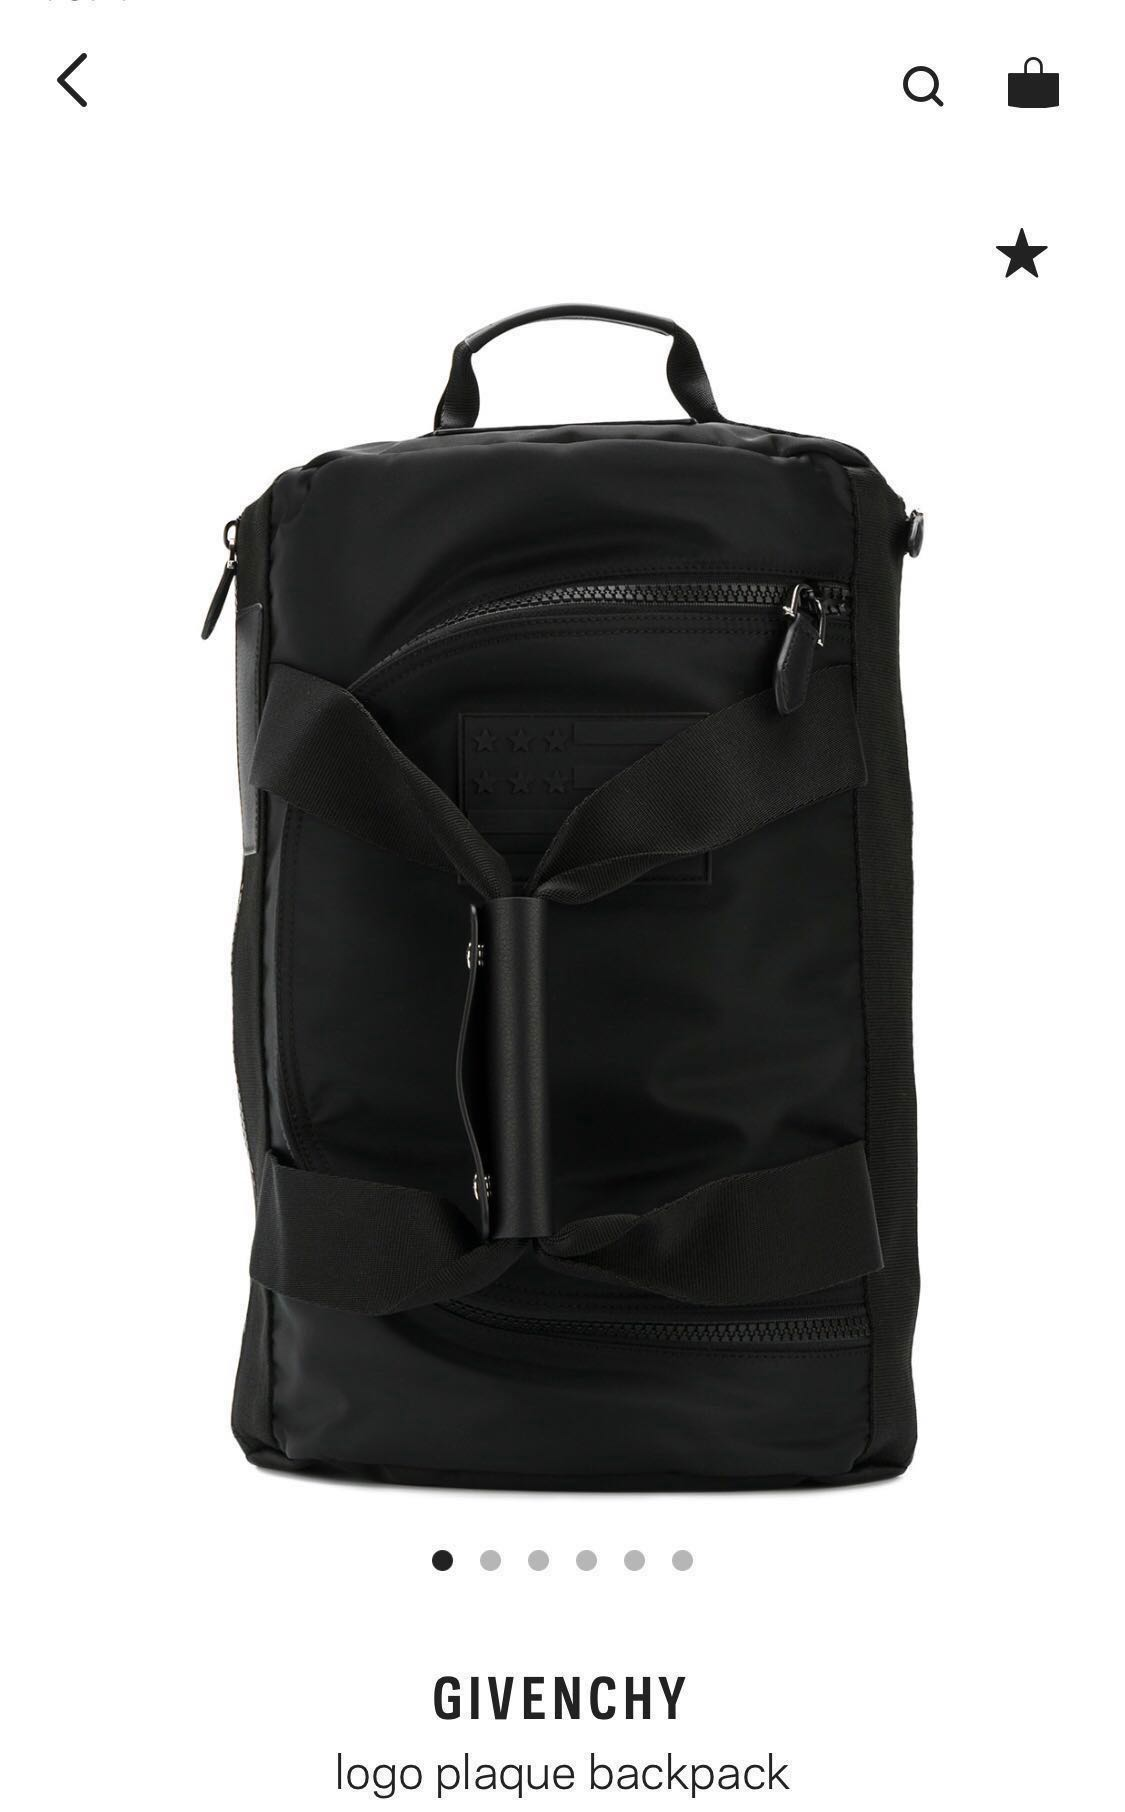 84d56d6787b9 Givenchy Backpack